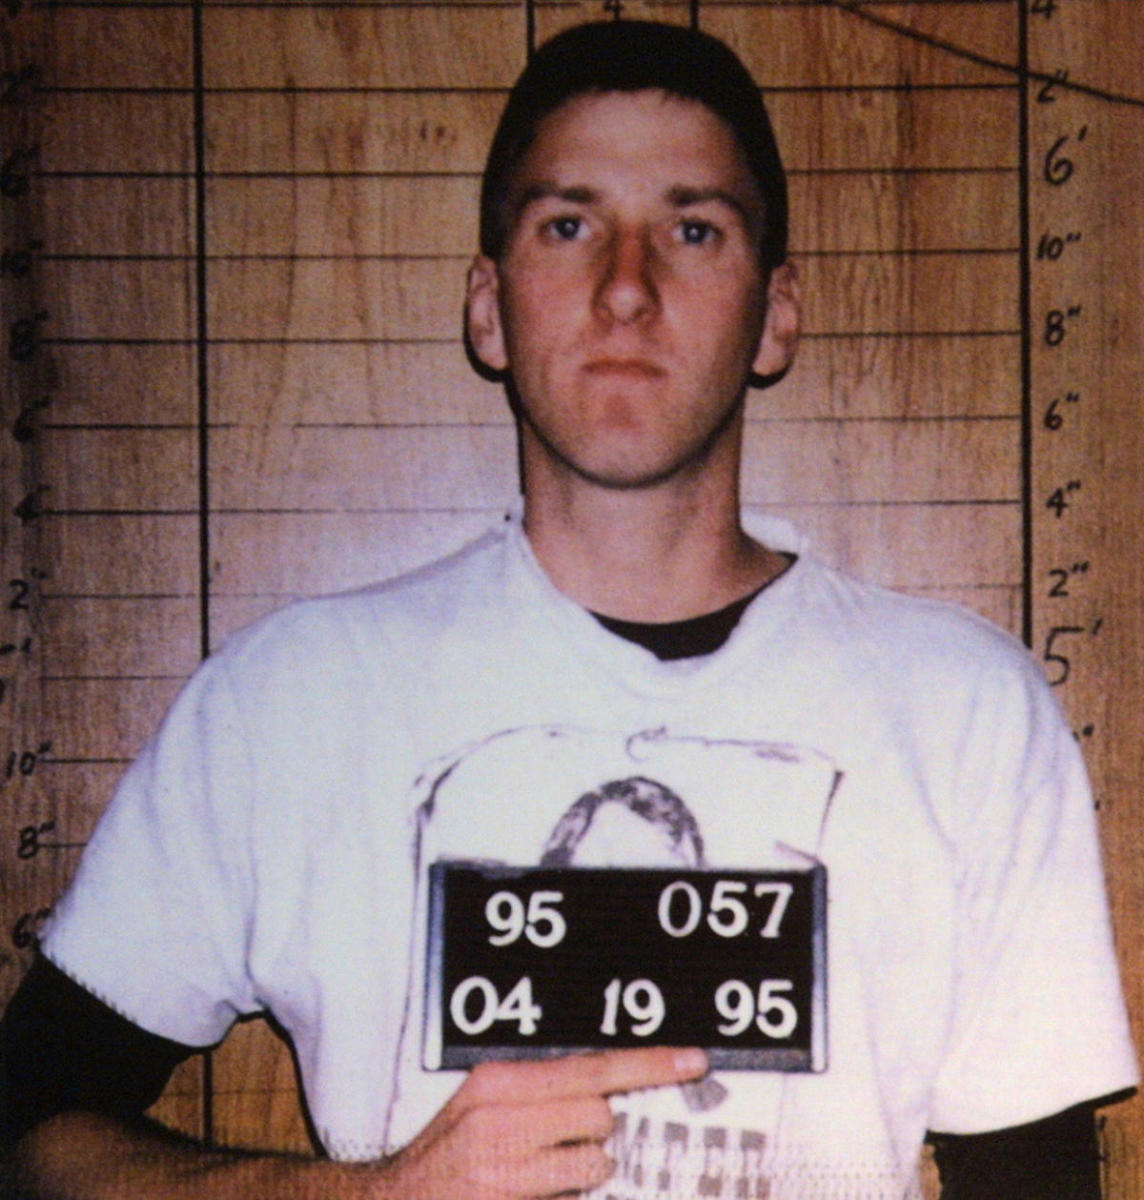 Police mug shot of Timothy McVeigh, as seen at the Oklahoma National Memorial Museum in Oklahoma City. (Credit: Getty Images)